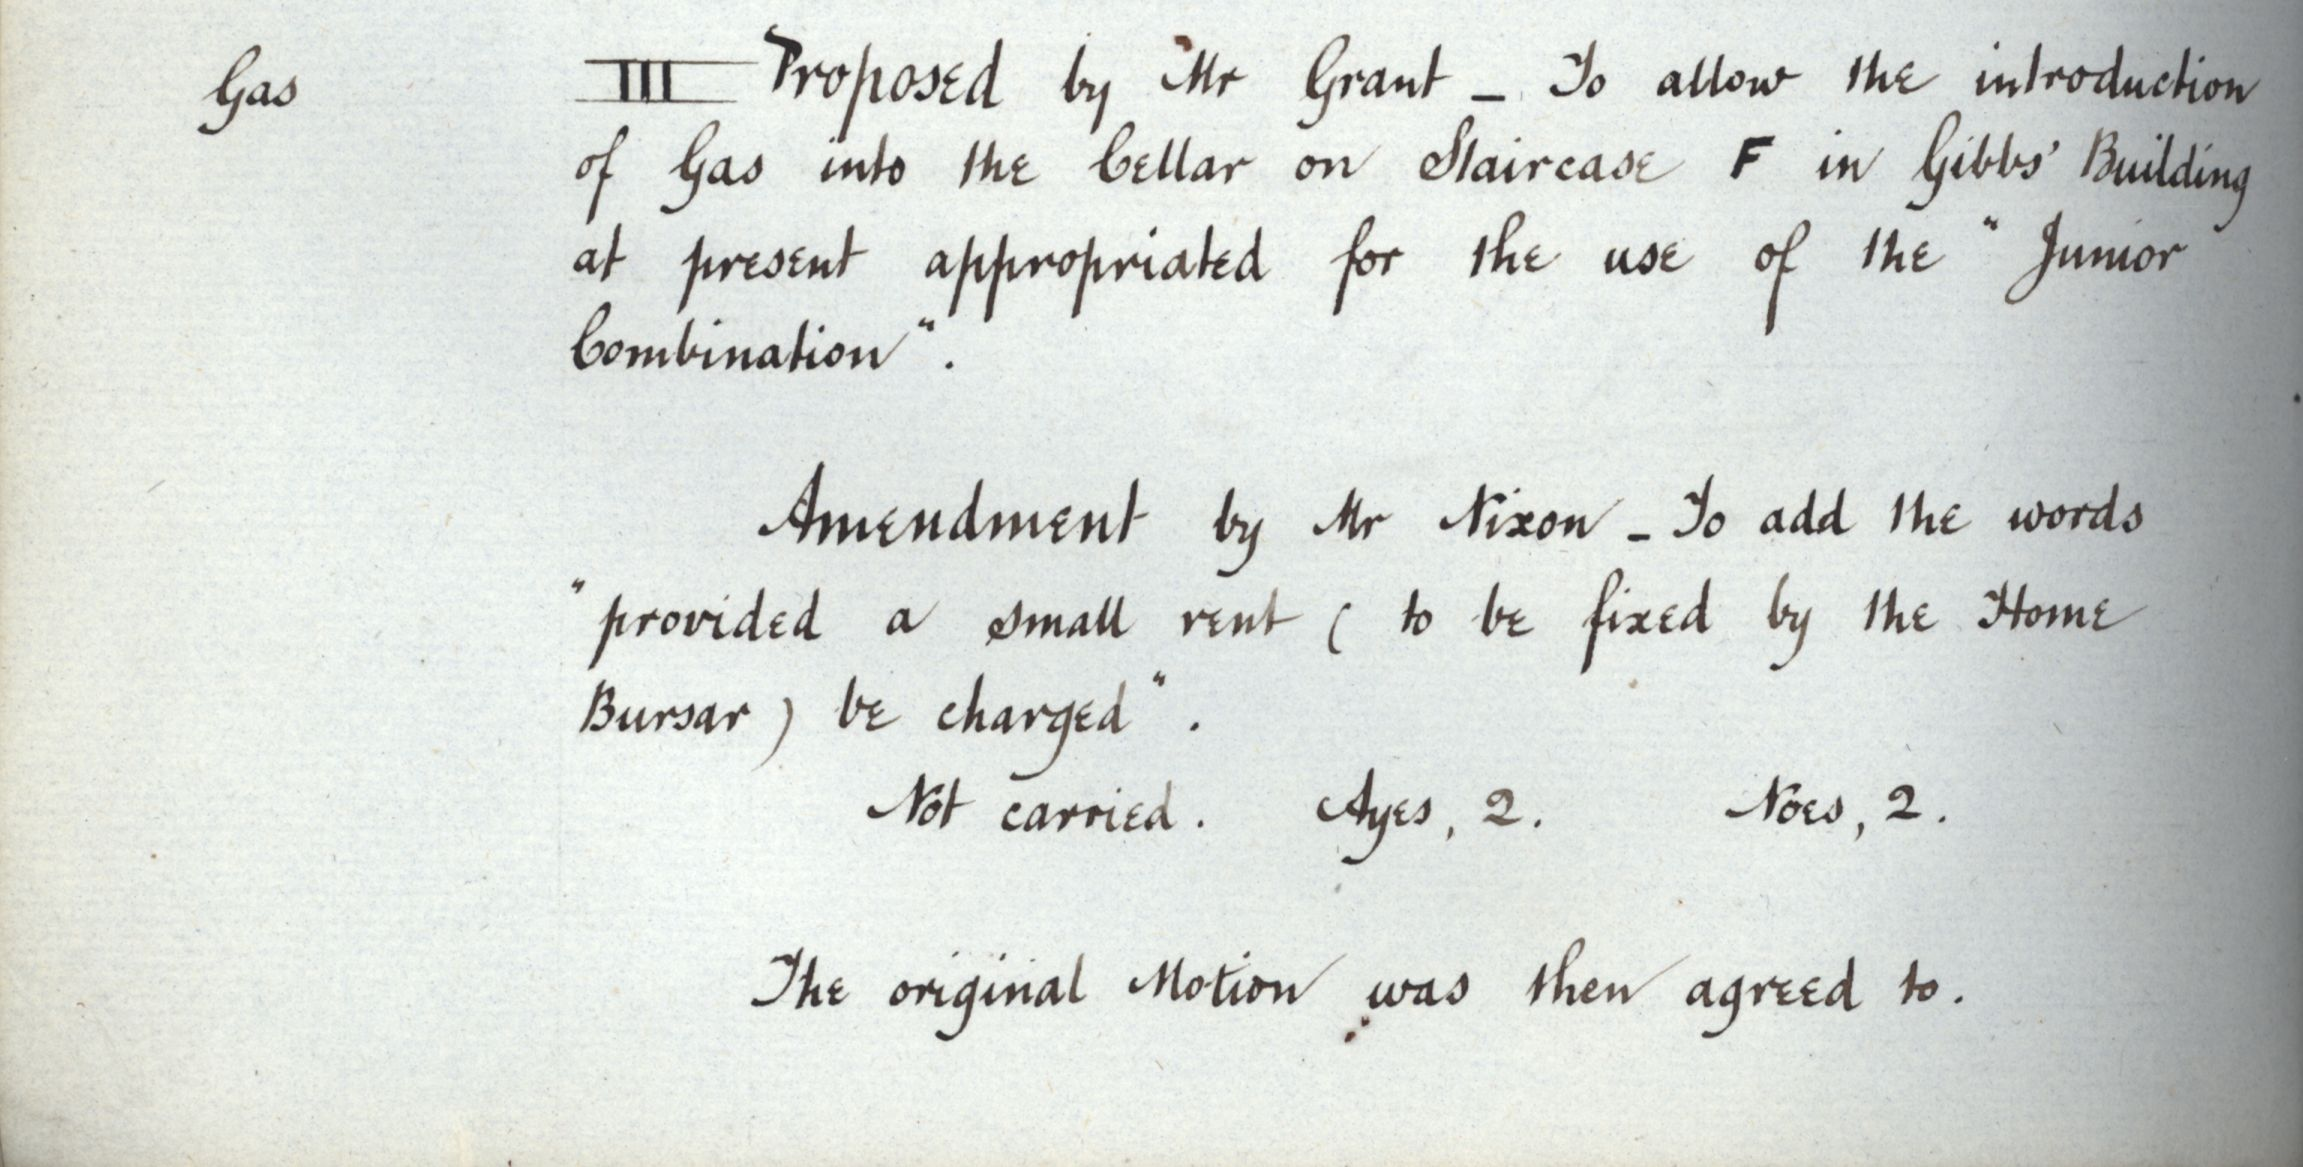 Agreement to introduce gas into the cellar of staircase F of the Gibbs building, Congregation minutes, 24 February 1881. [KCGB/4/1/1/8]